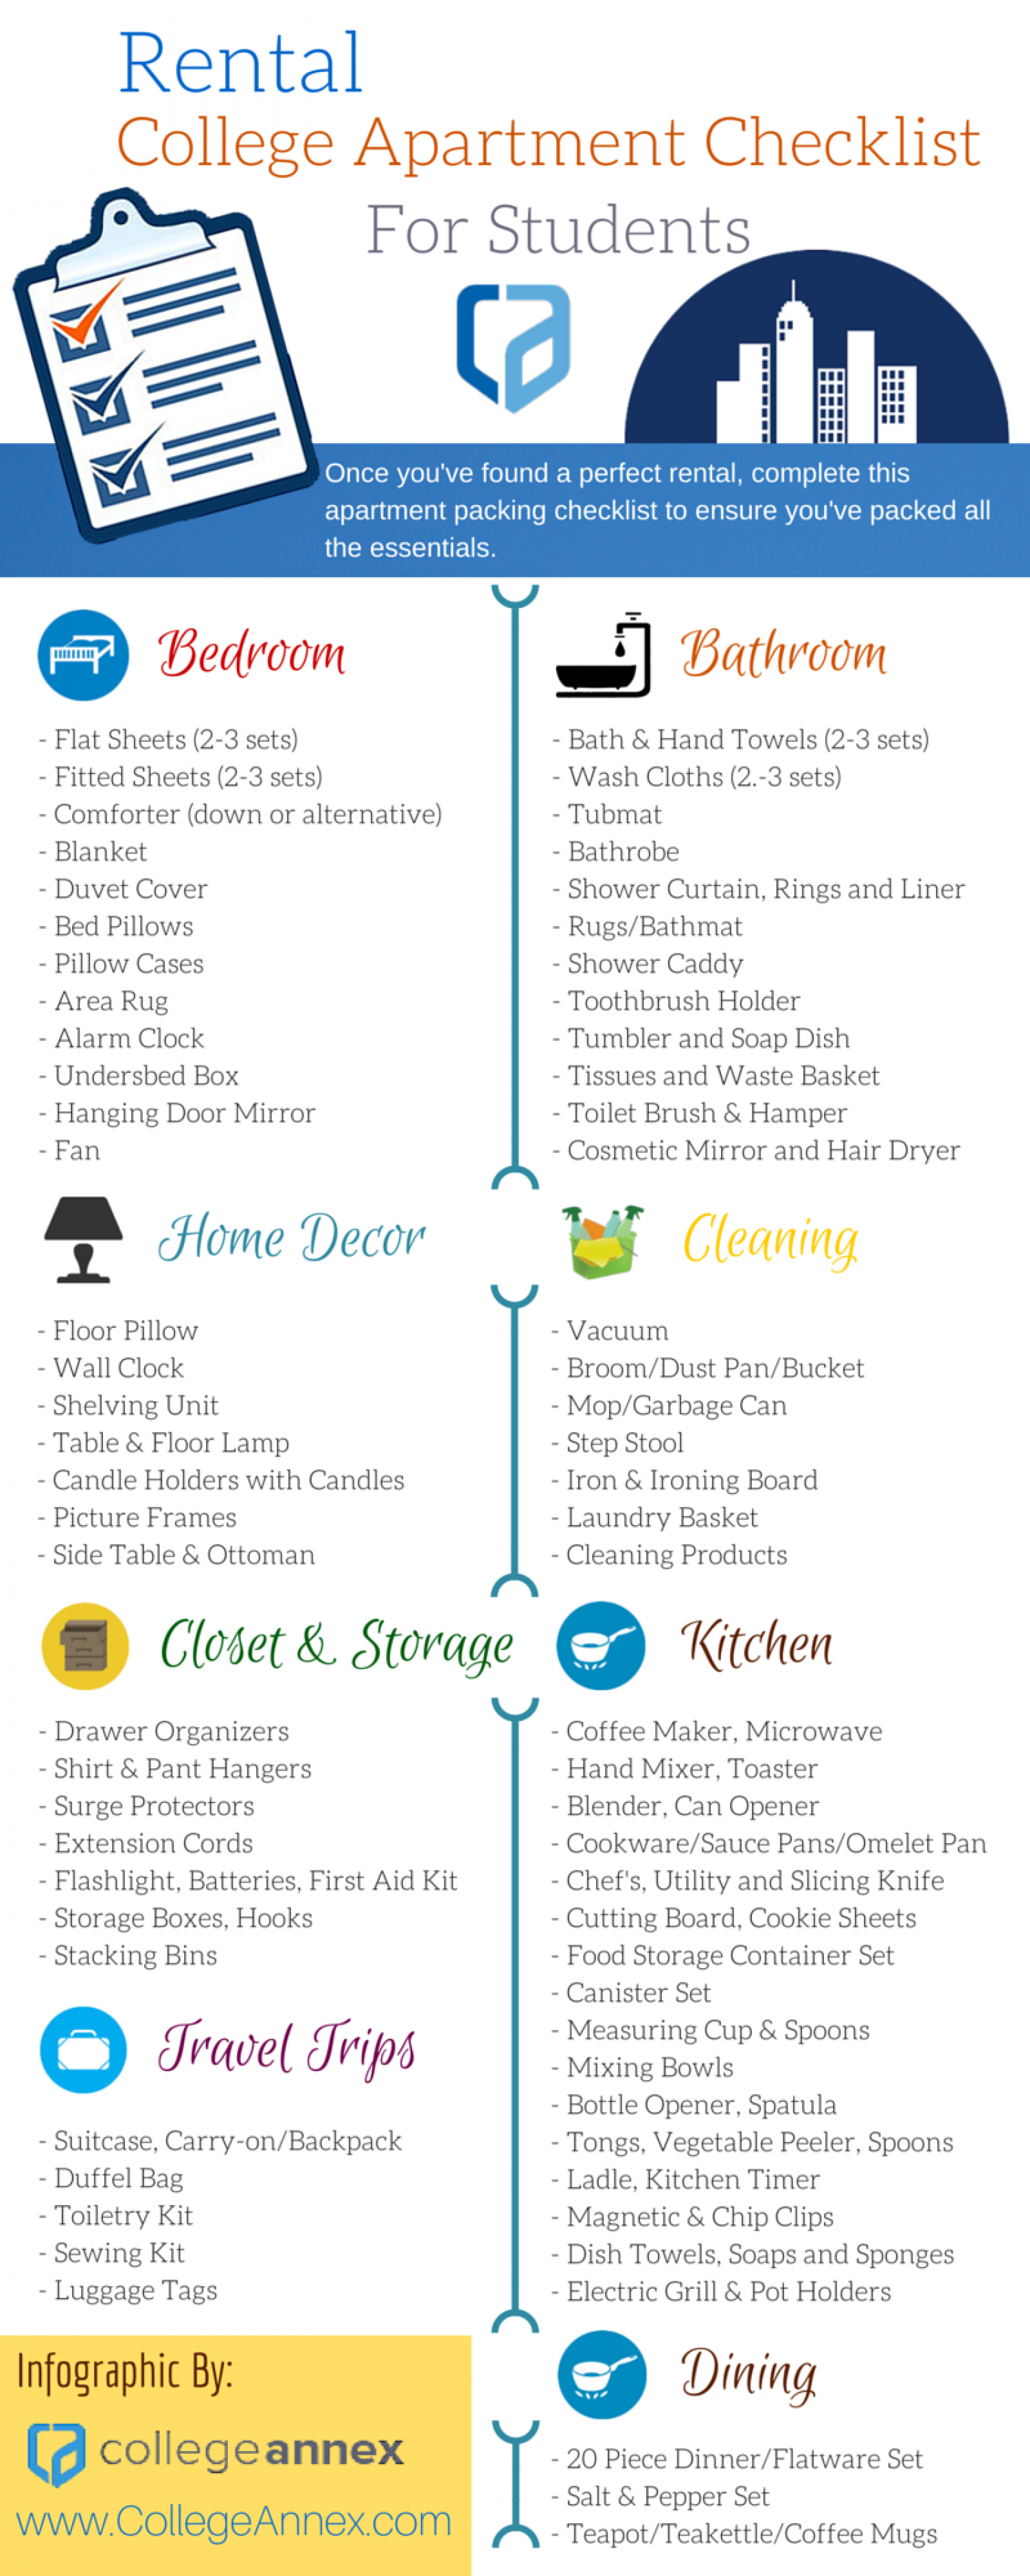 College Apartment Checklist For Students Infographic